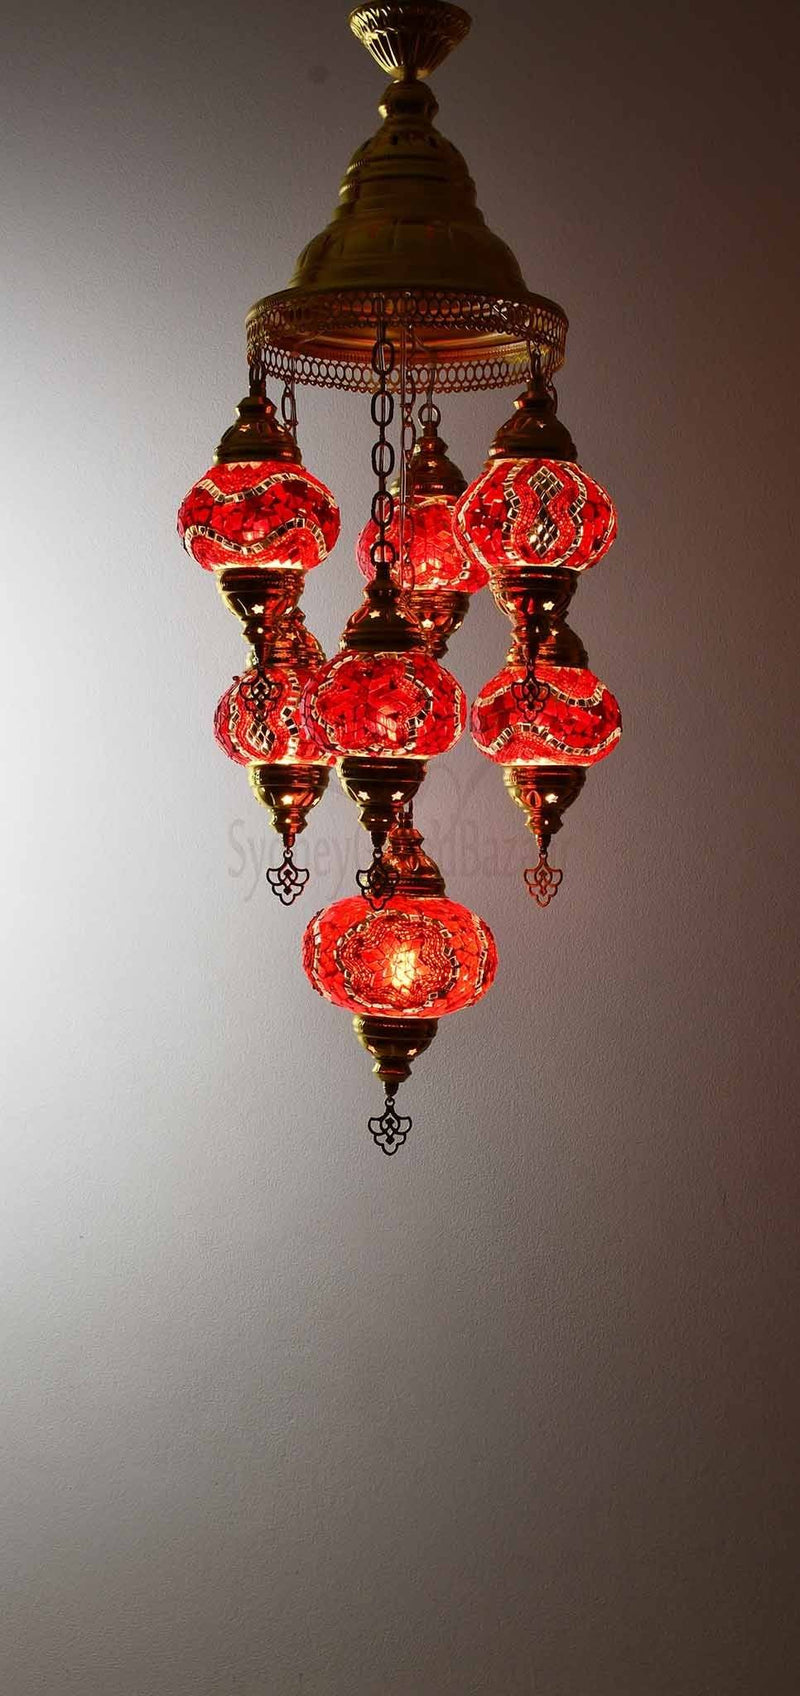 Turkish Mosaic Pendant Light 7 Globes in Gold Lighting Sydney Grand Bazaar Red